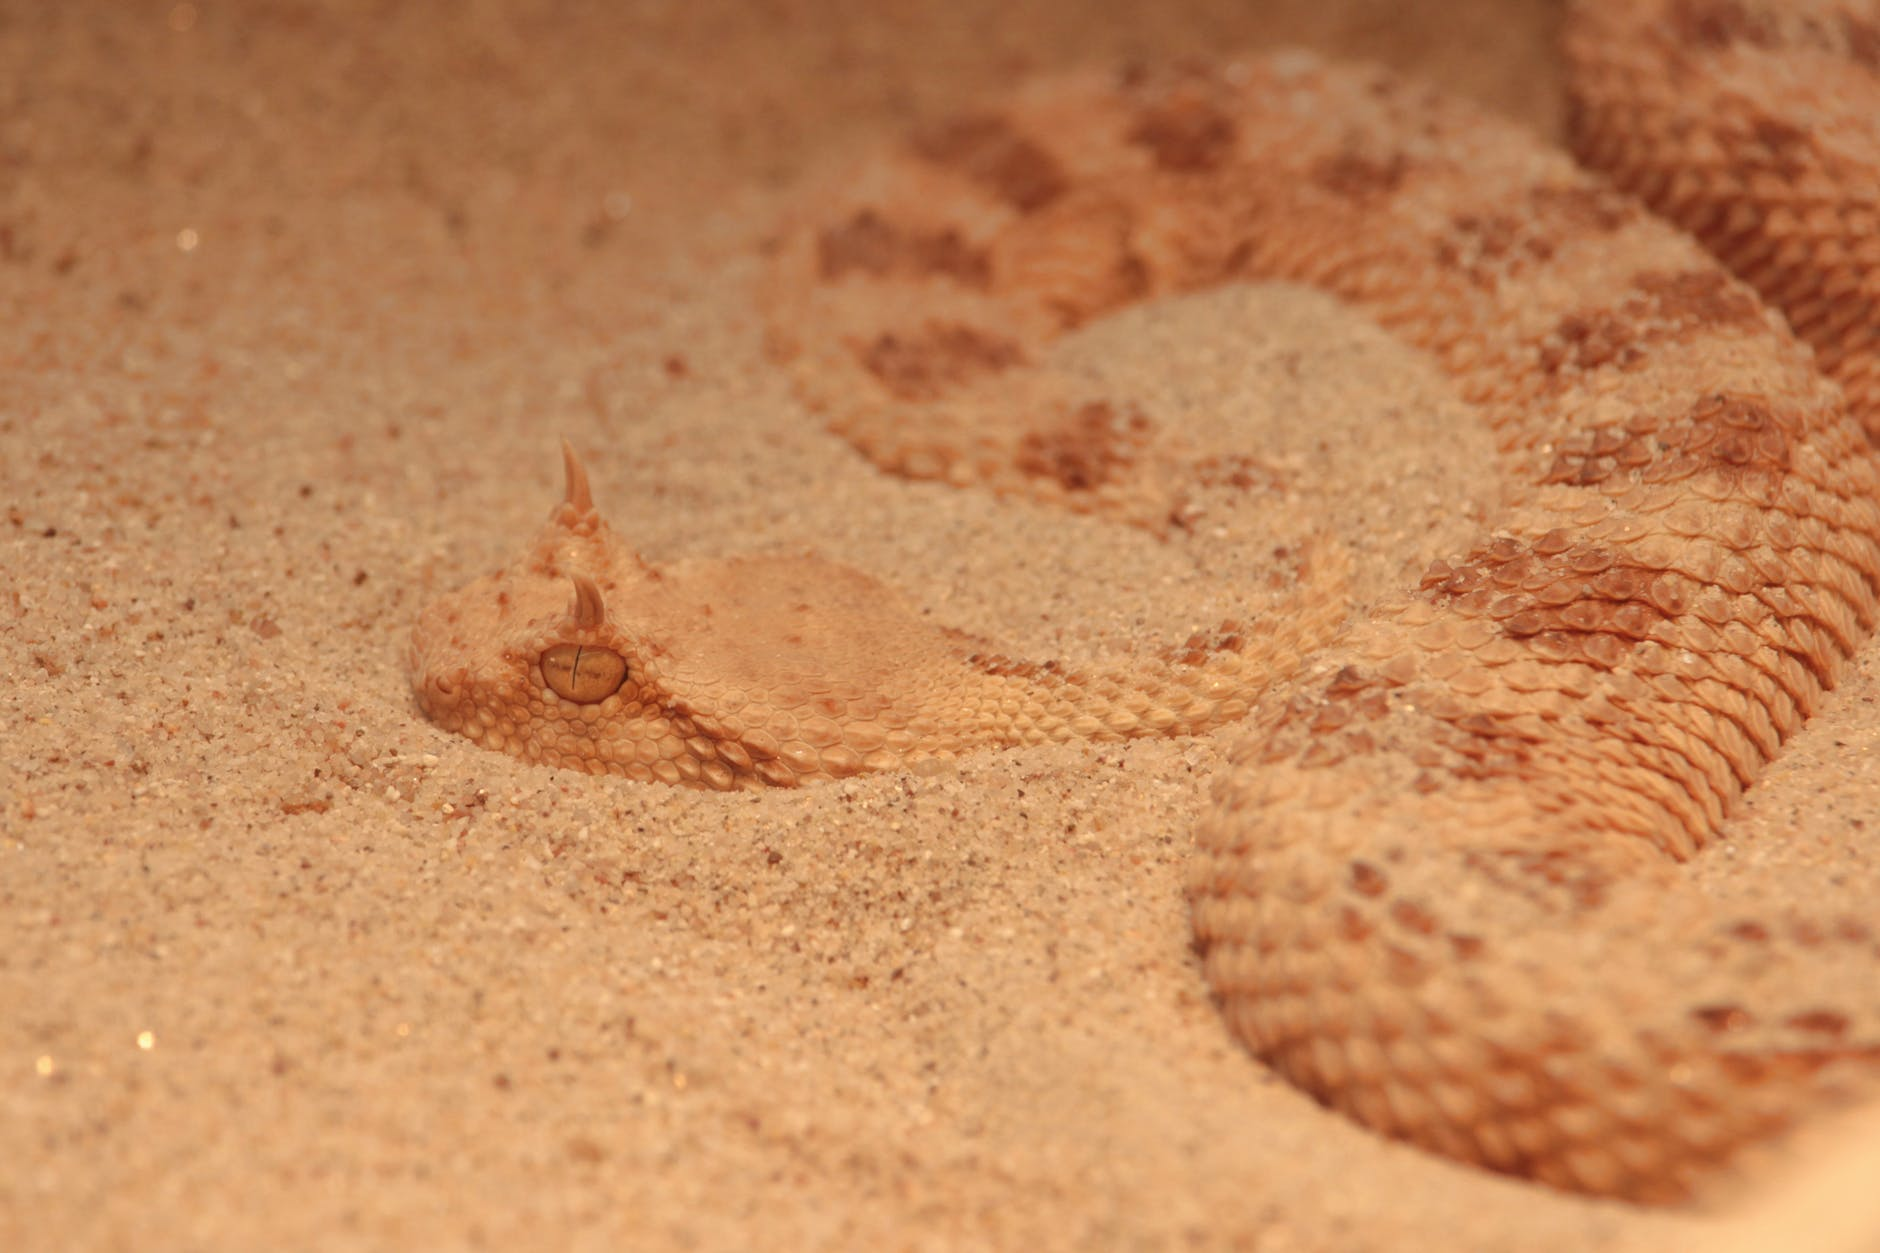 close up photo of a brown sidewinder snake on sand